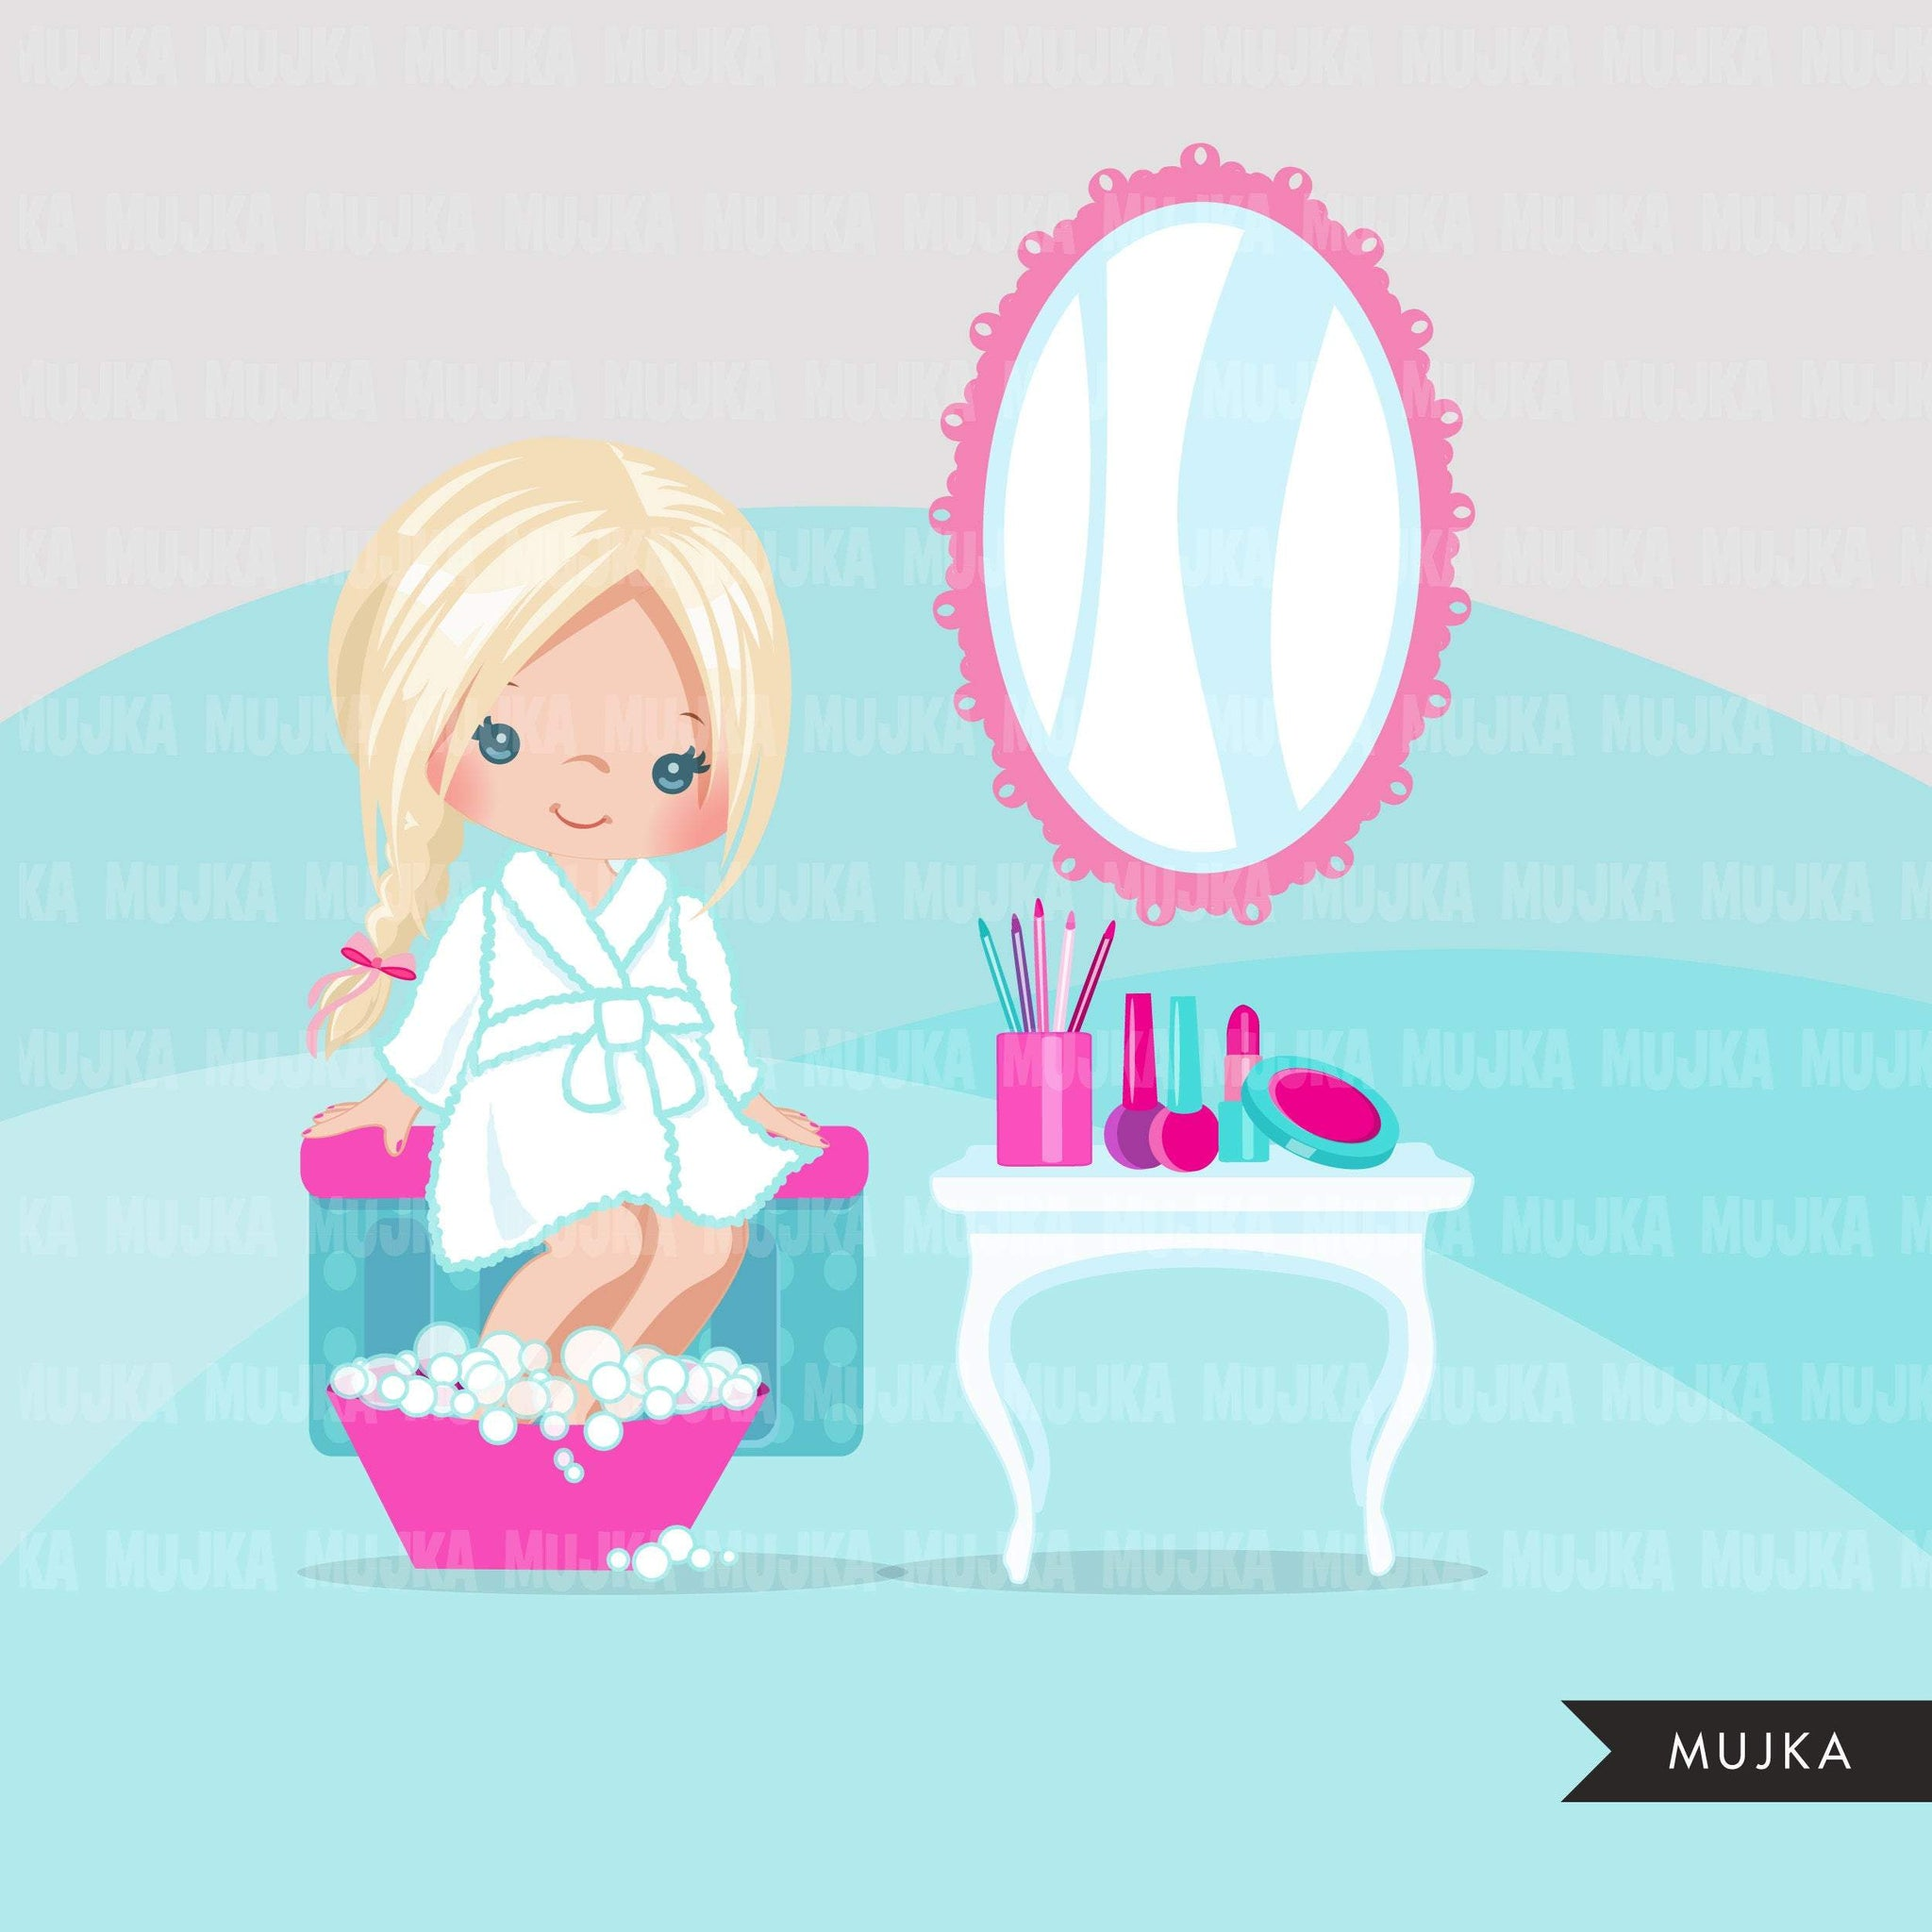 Spa clipart, spa elements party black girl graphics, bubble bath, bathtub, nail polish, spa birthday , graphics,  commercial use clip art